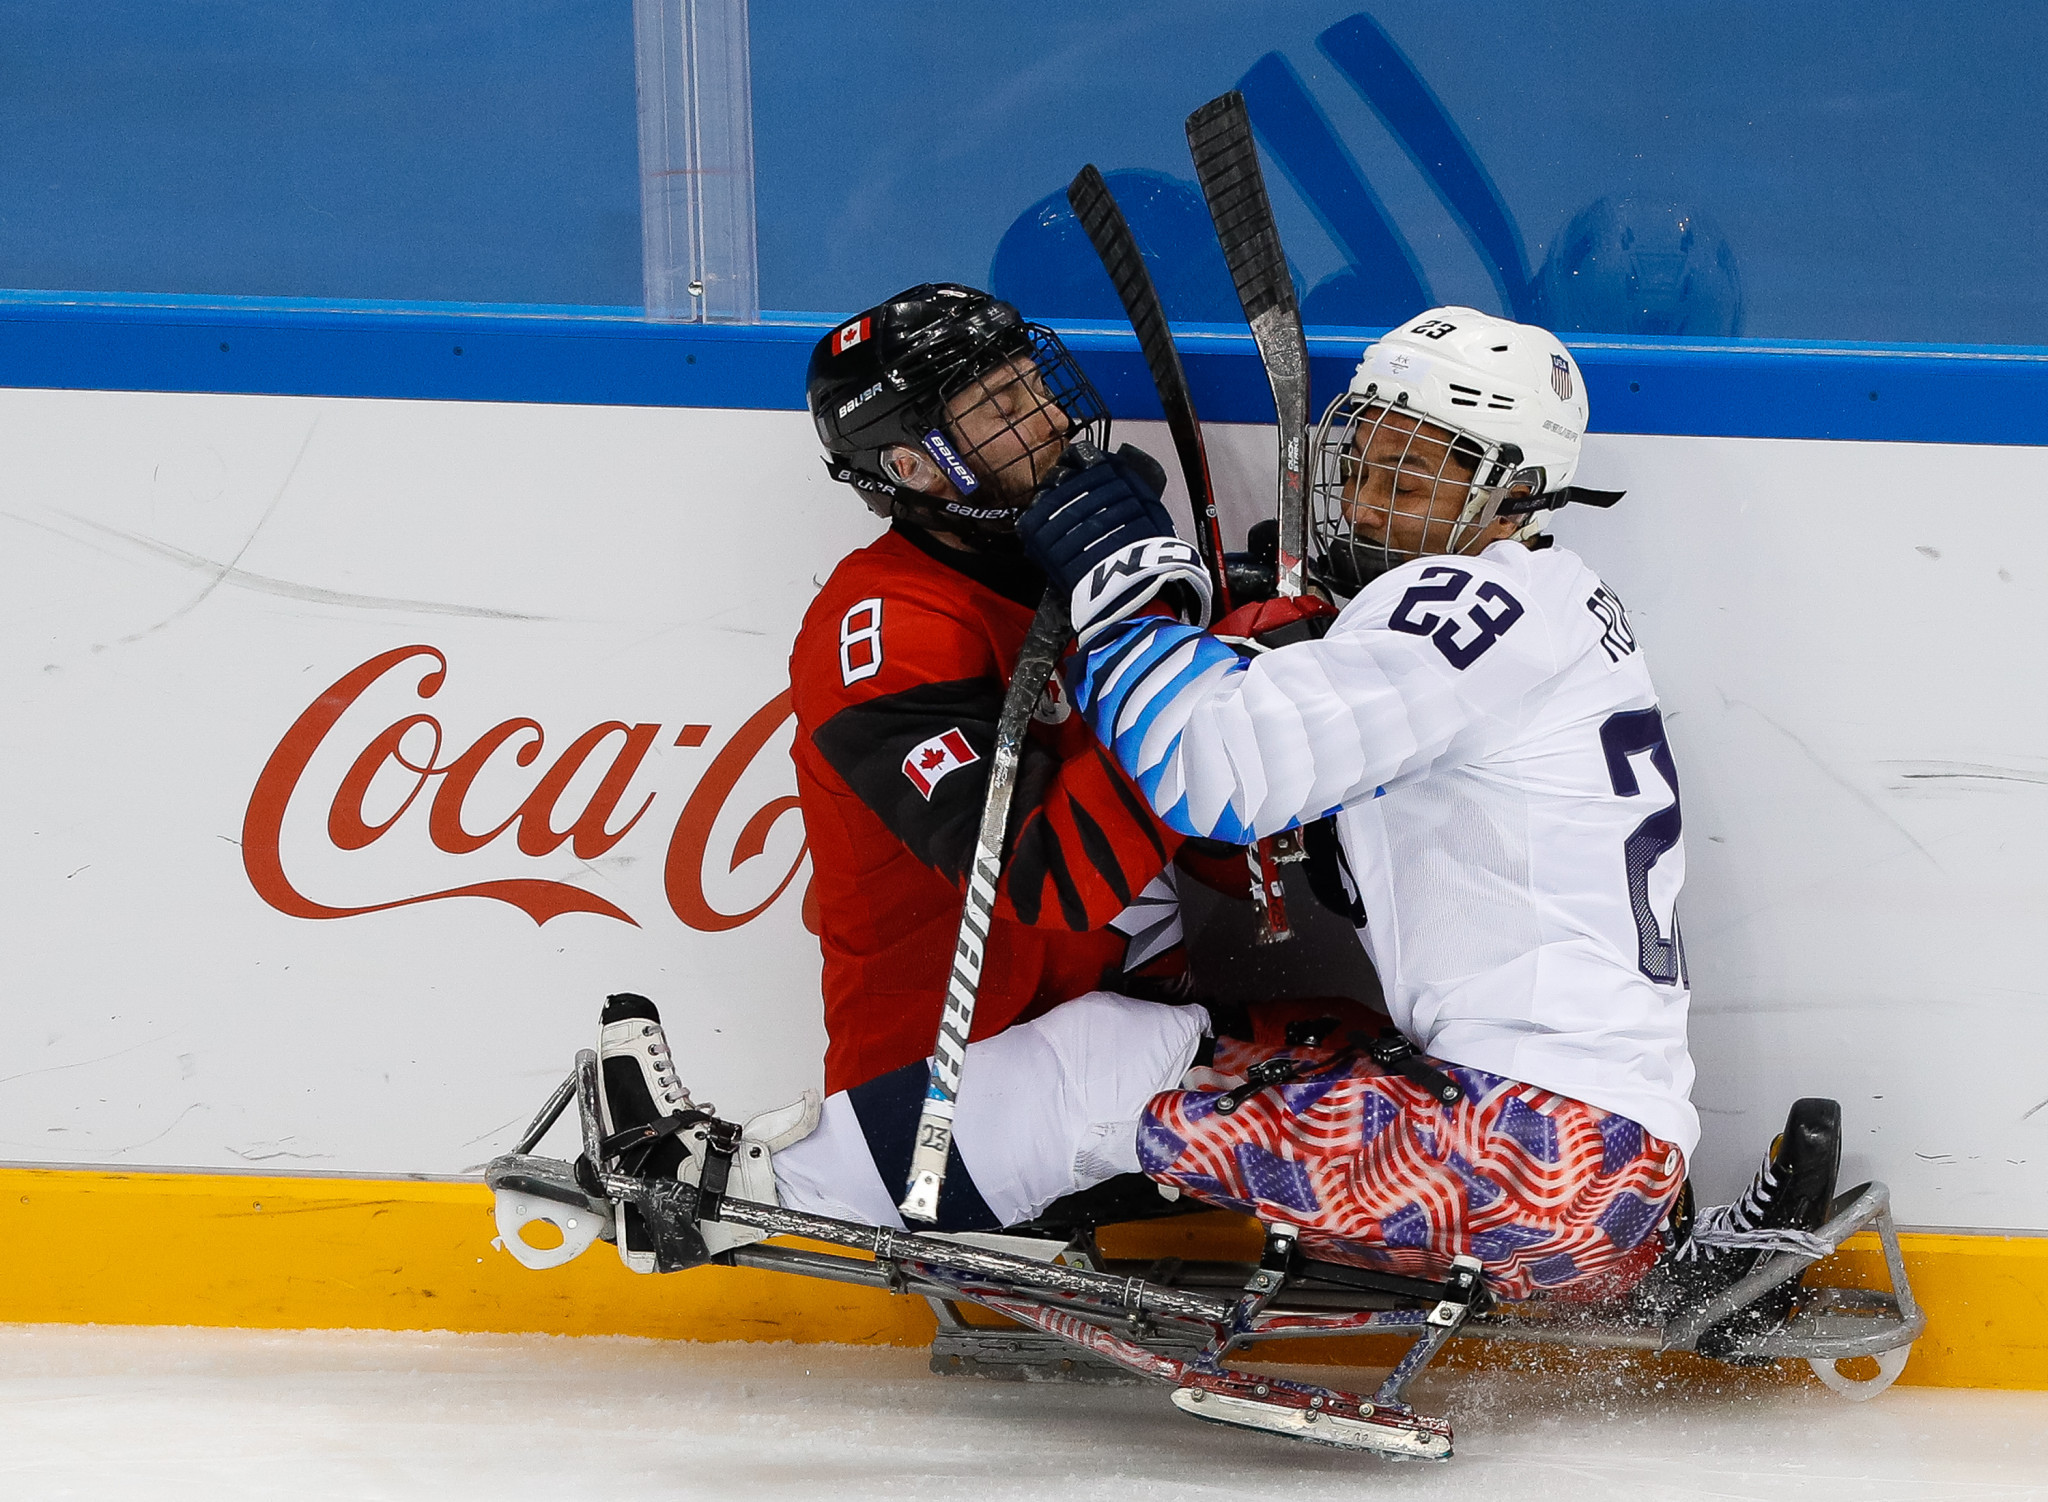 Canada and the United States will face eachother at the 2019 World Para Ice Hockey Championships in a rematch of the 2018 Pyeongchang Paralympic final, which the US won ©Getty Images